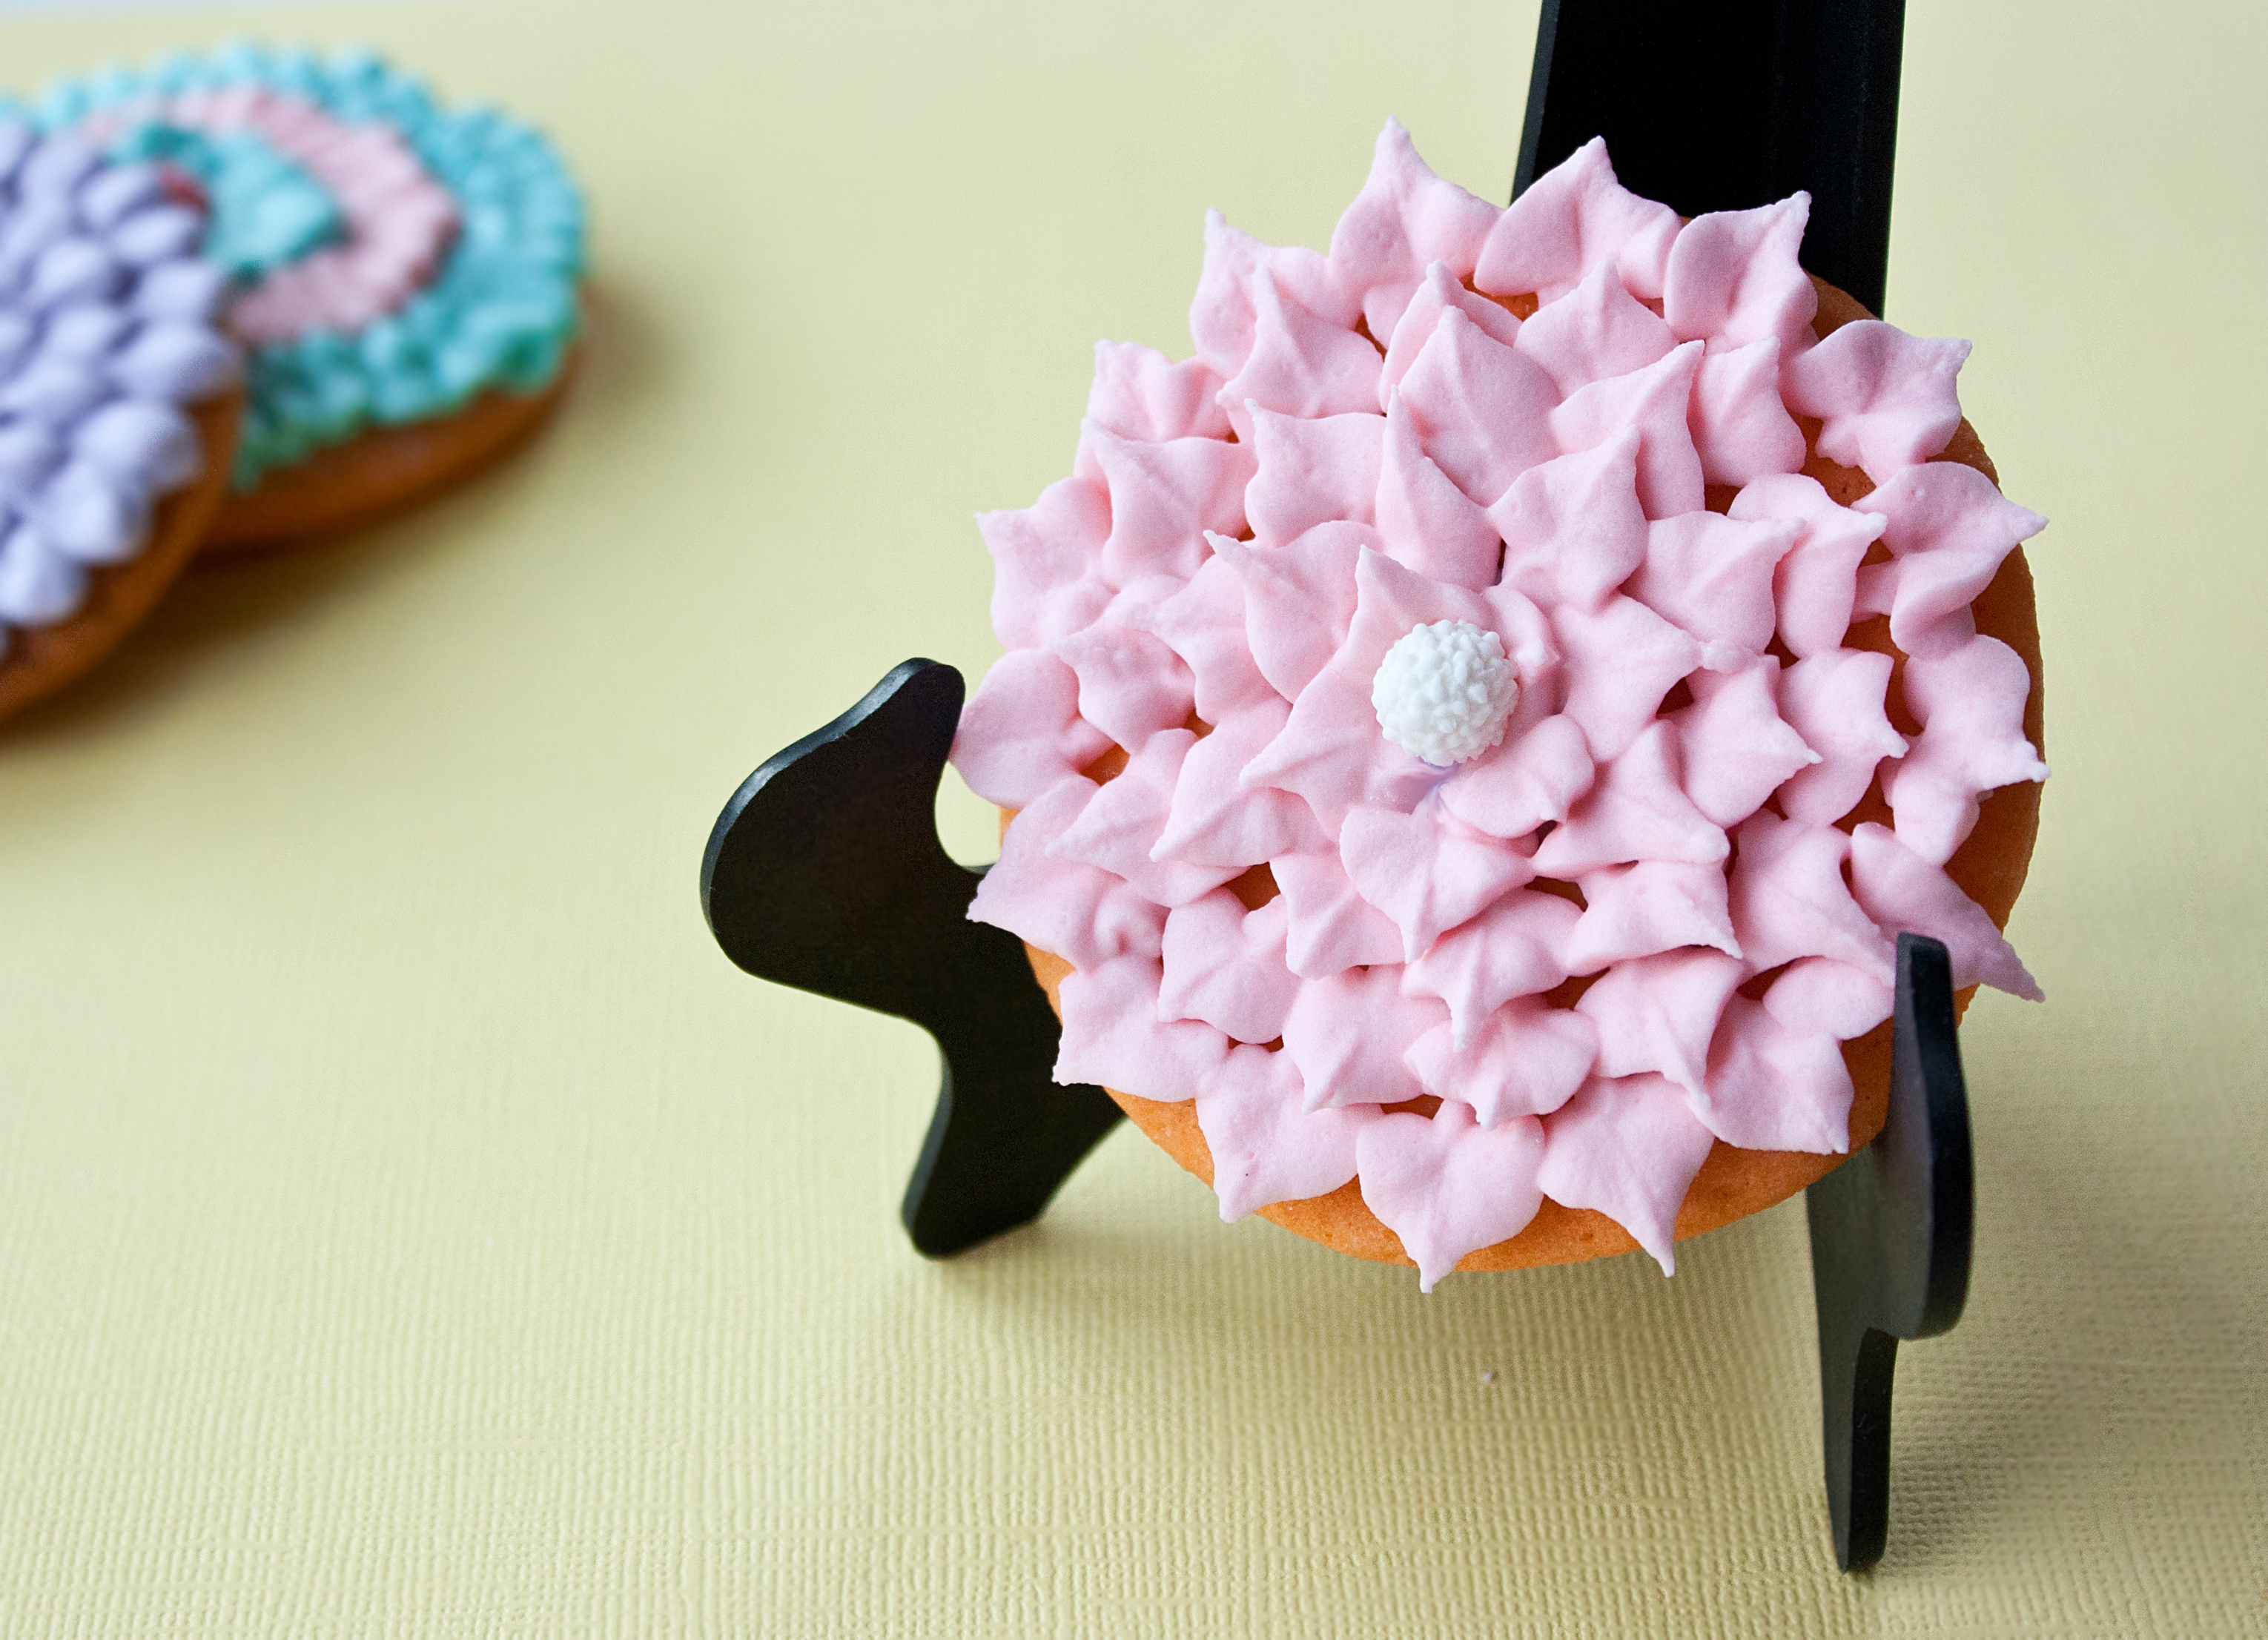 Video: How to Make Daisy Cookies With Royal Icing